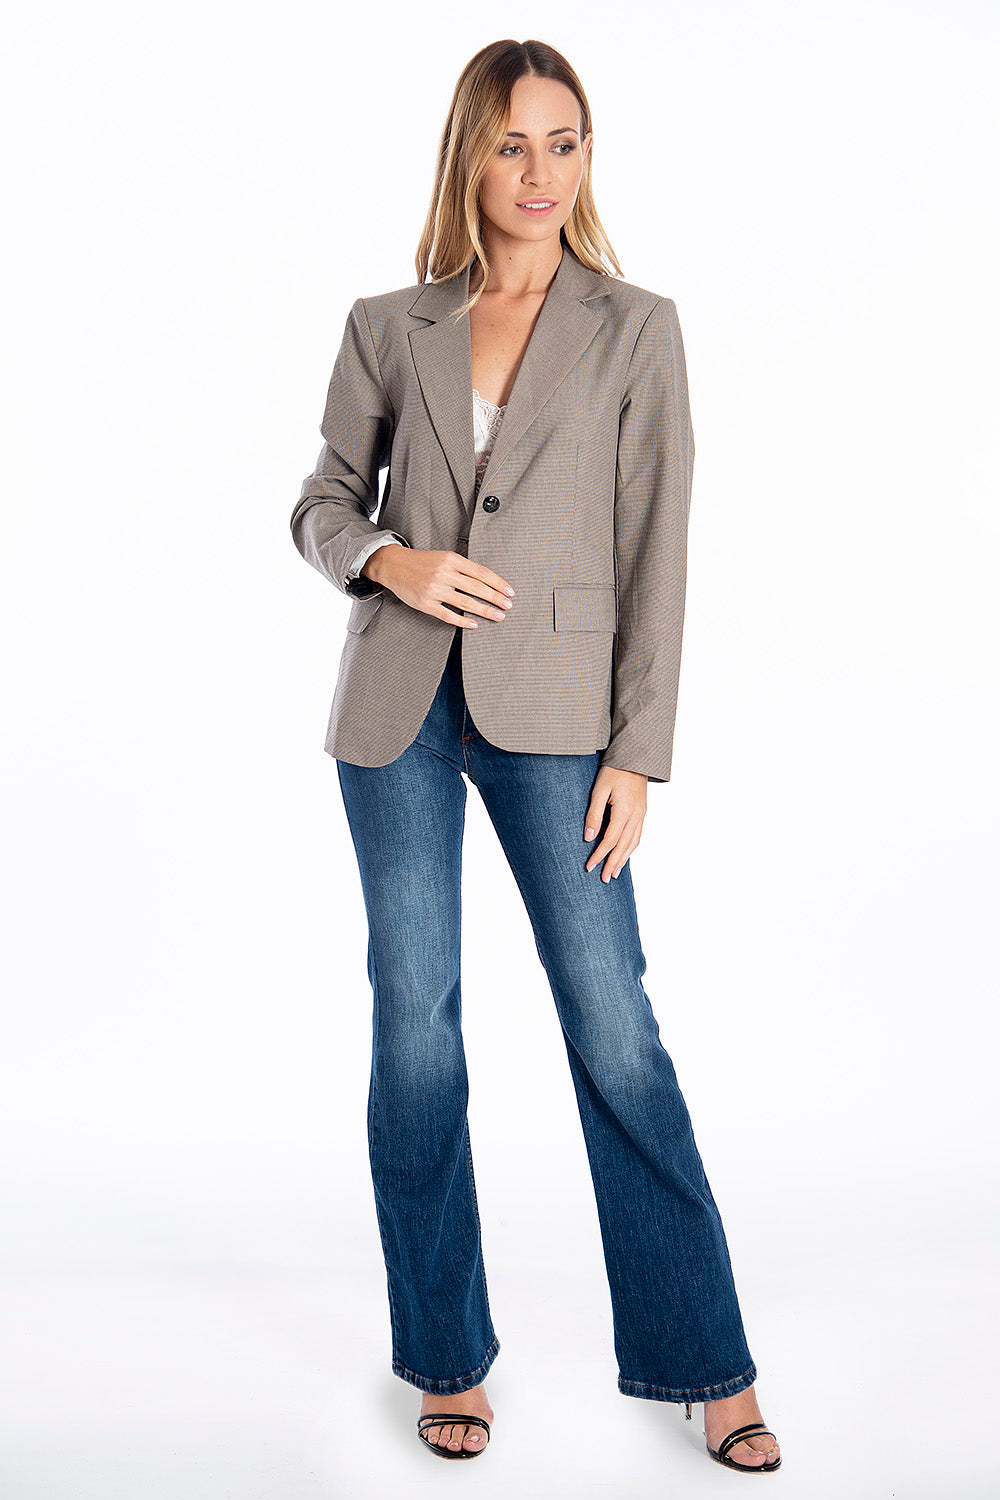 NúNu clear blazer in check with inner lining